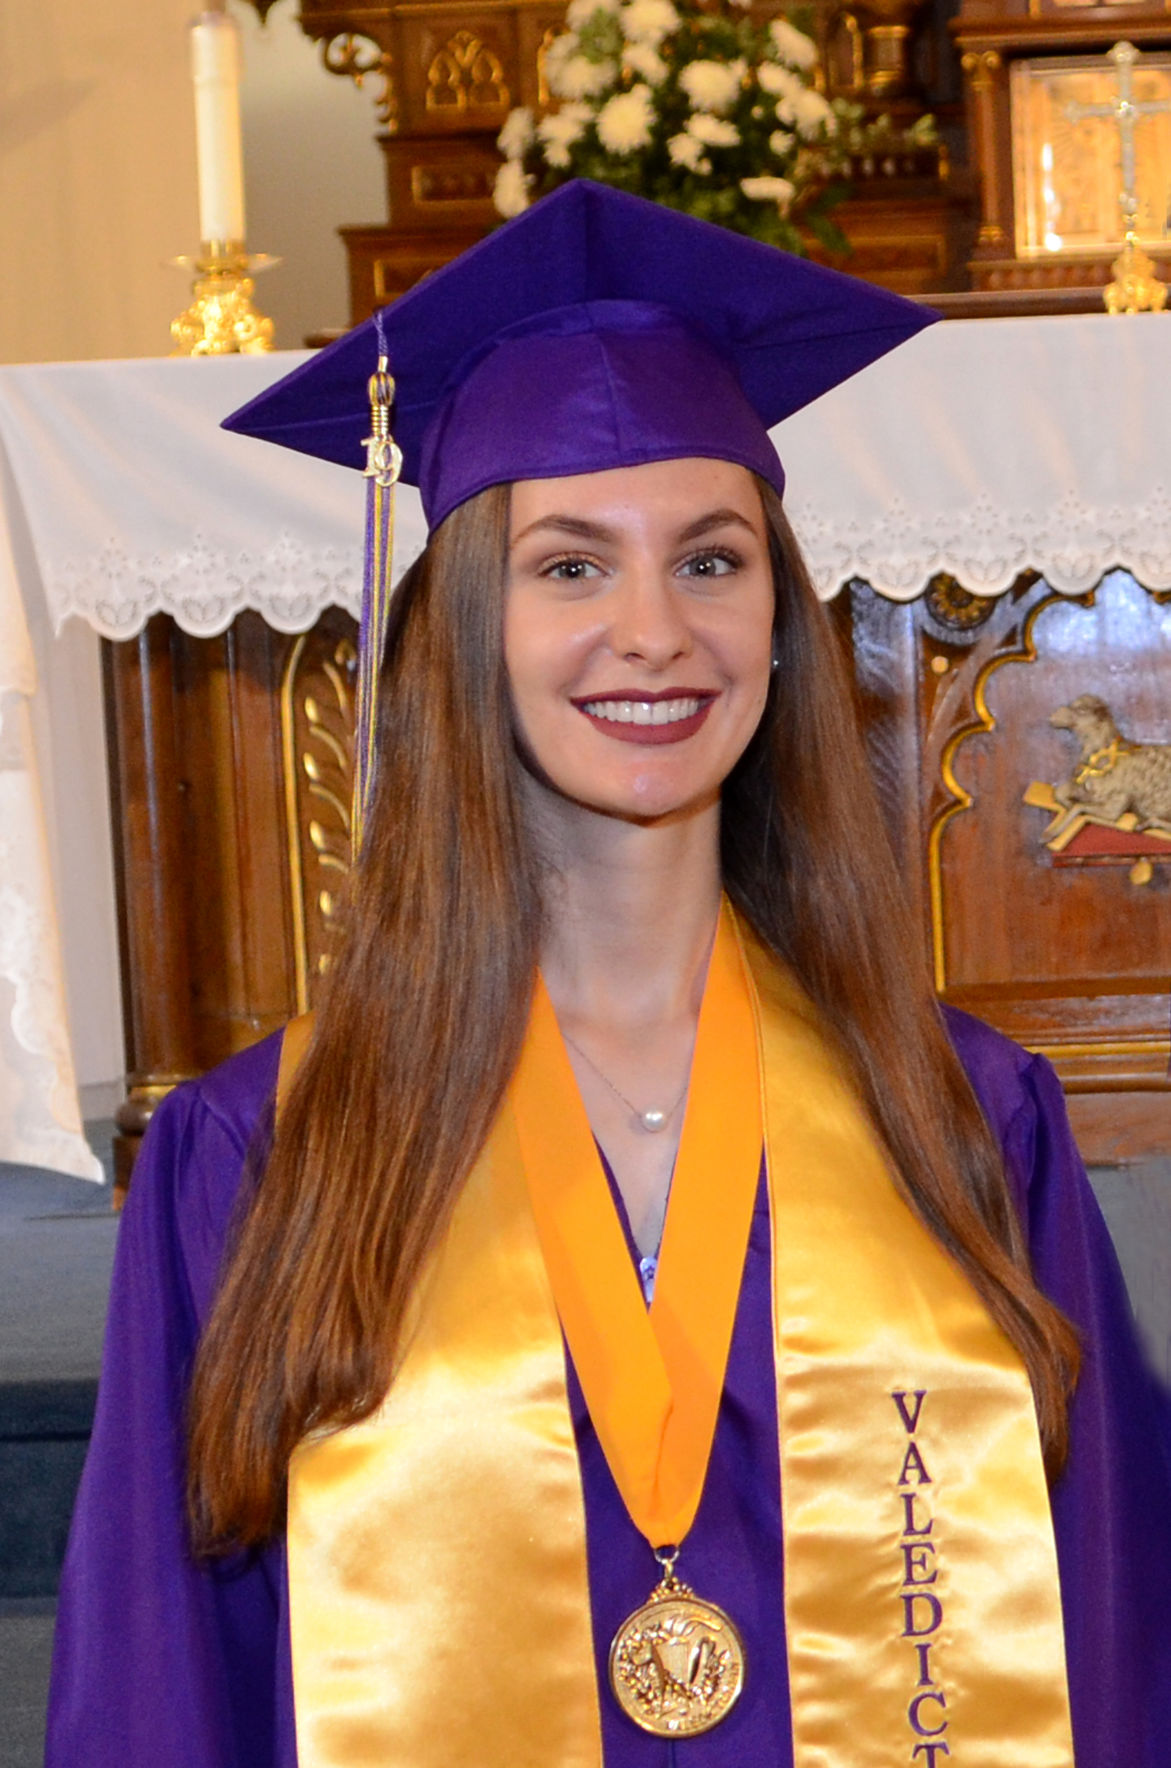 ACgraduation2019-MadisonZeringue.jpg